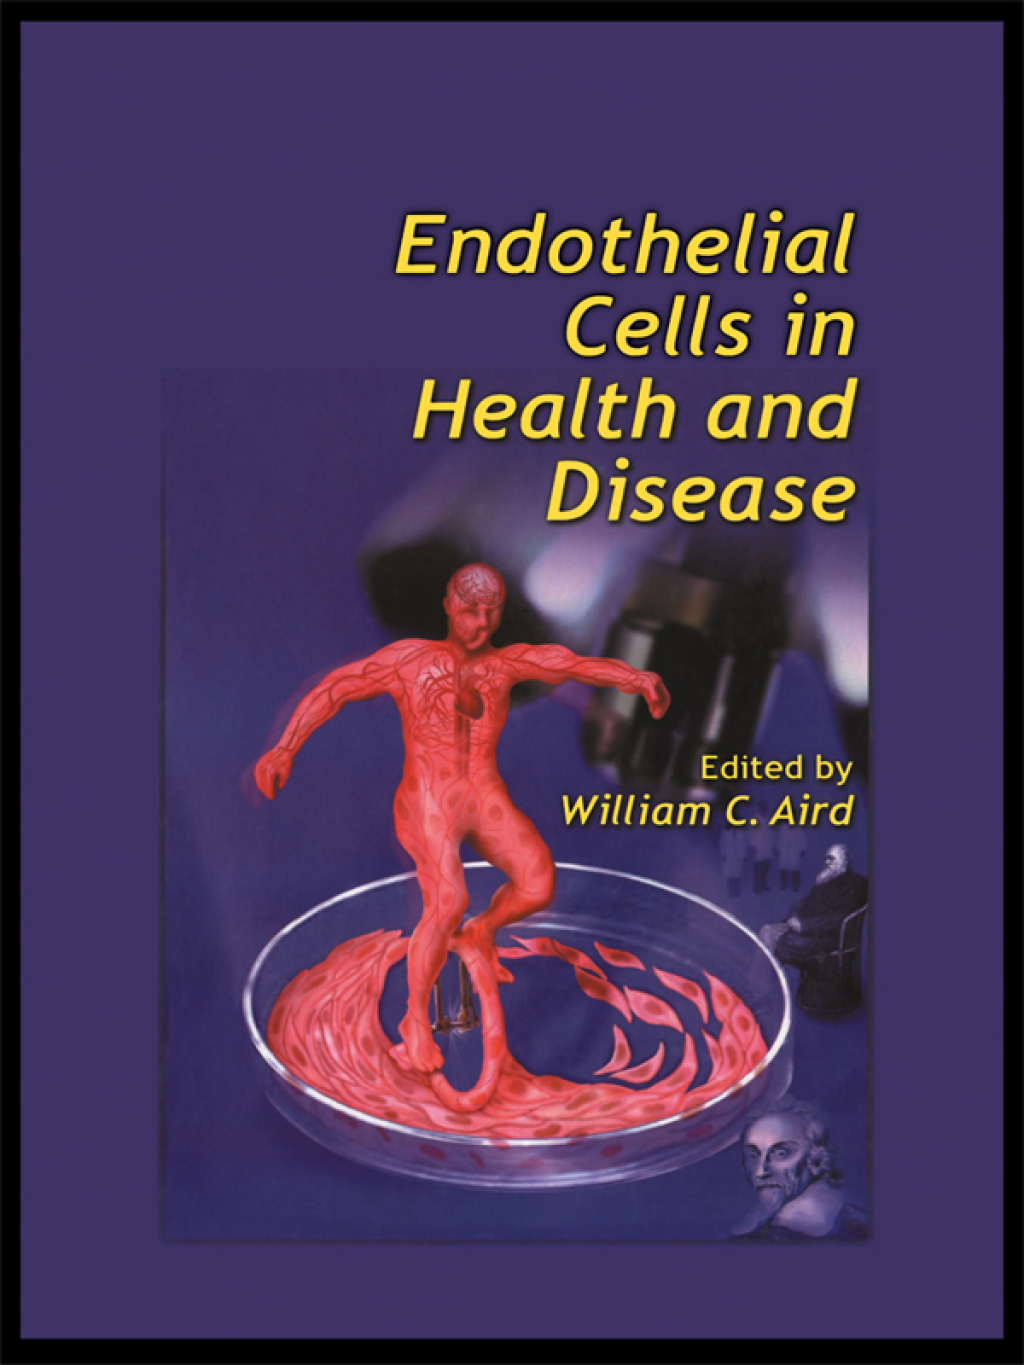 Endothelial Cells in Health and Disease (eBook) - William C. Aird